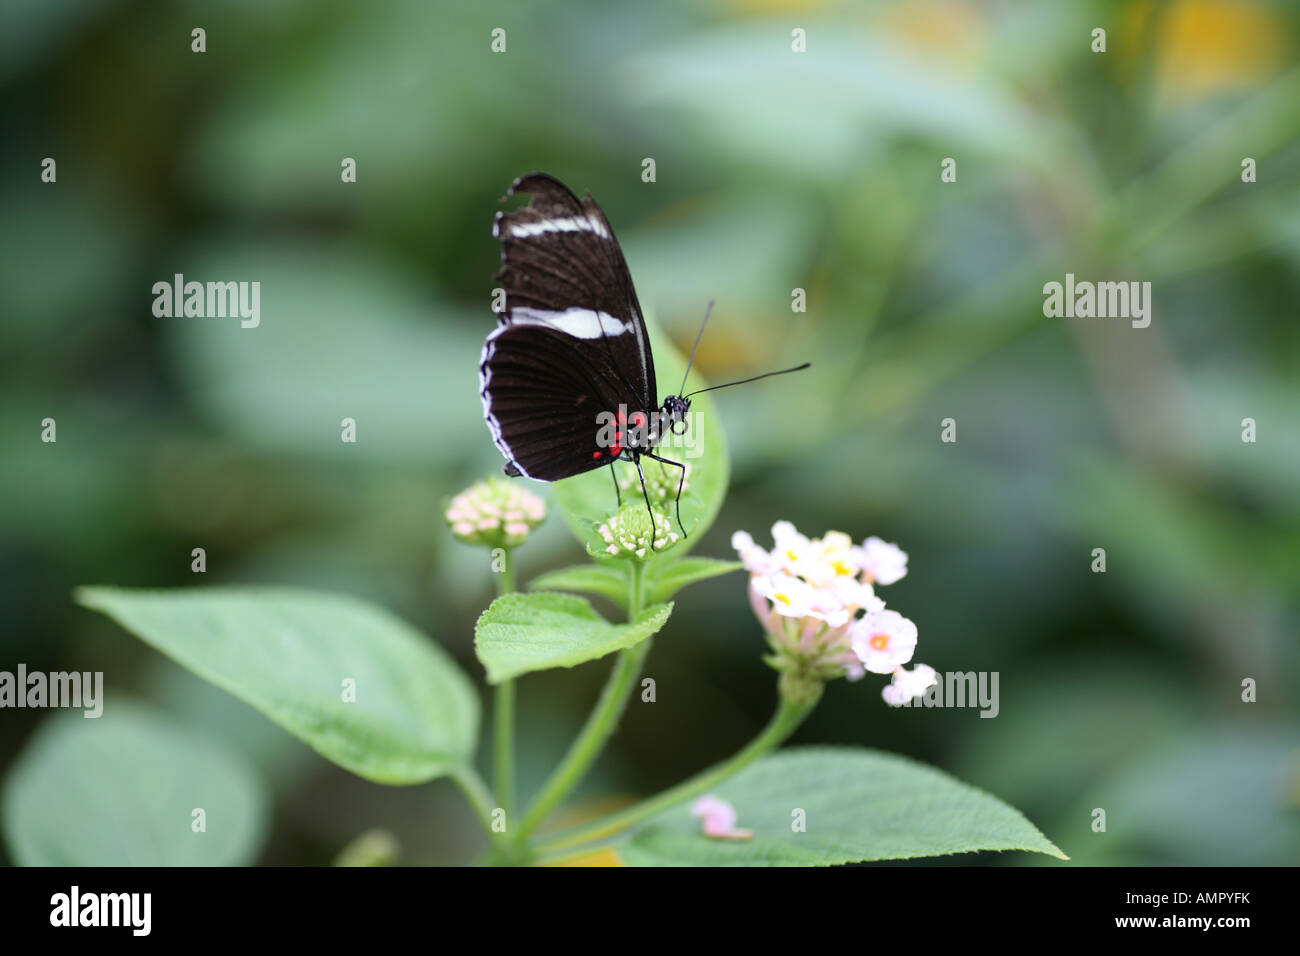 a Sapho Long wing Butterfly sat on a flowering plant - Stock Image